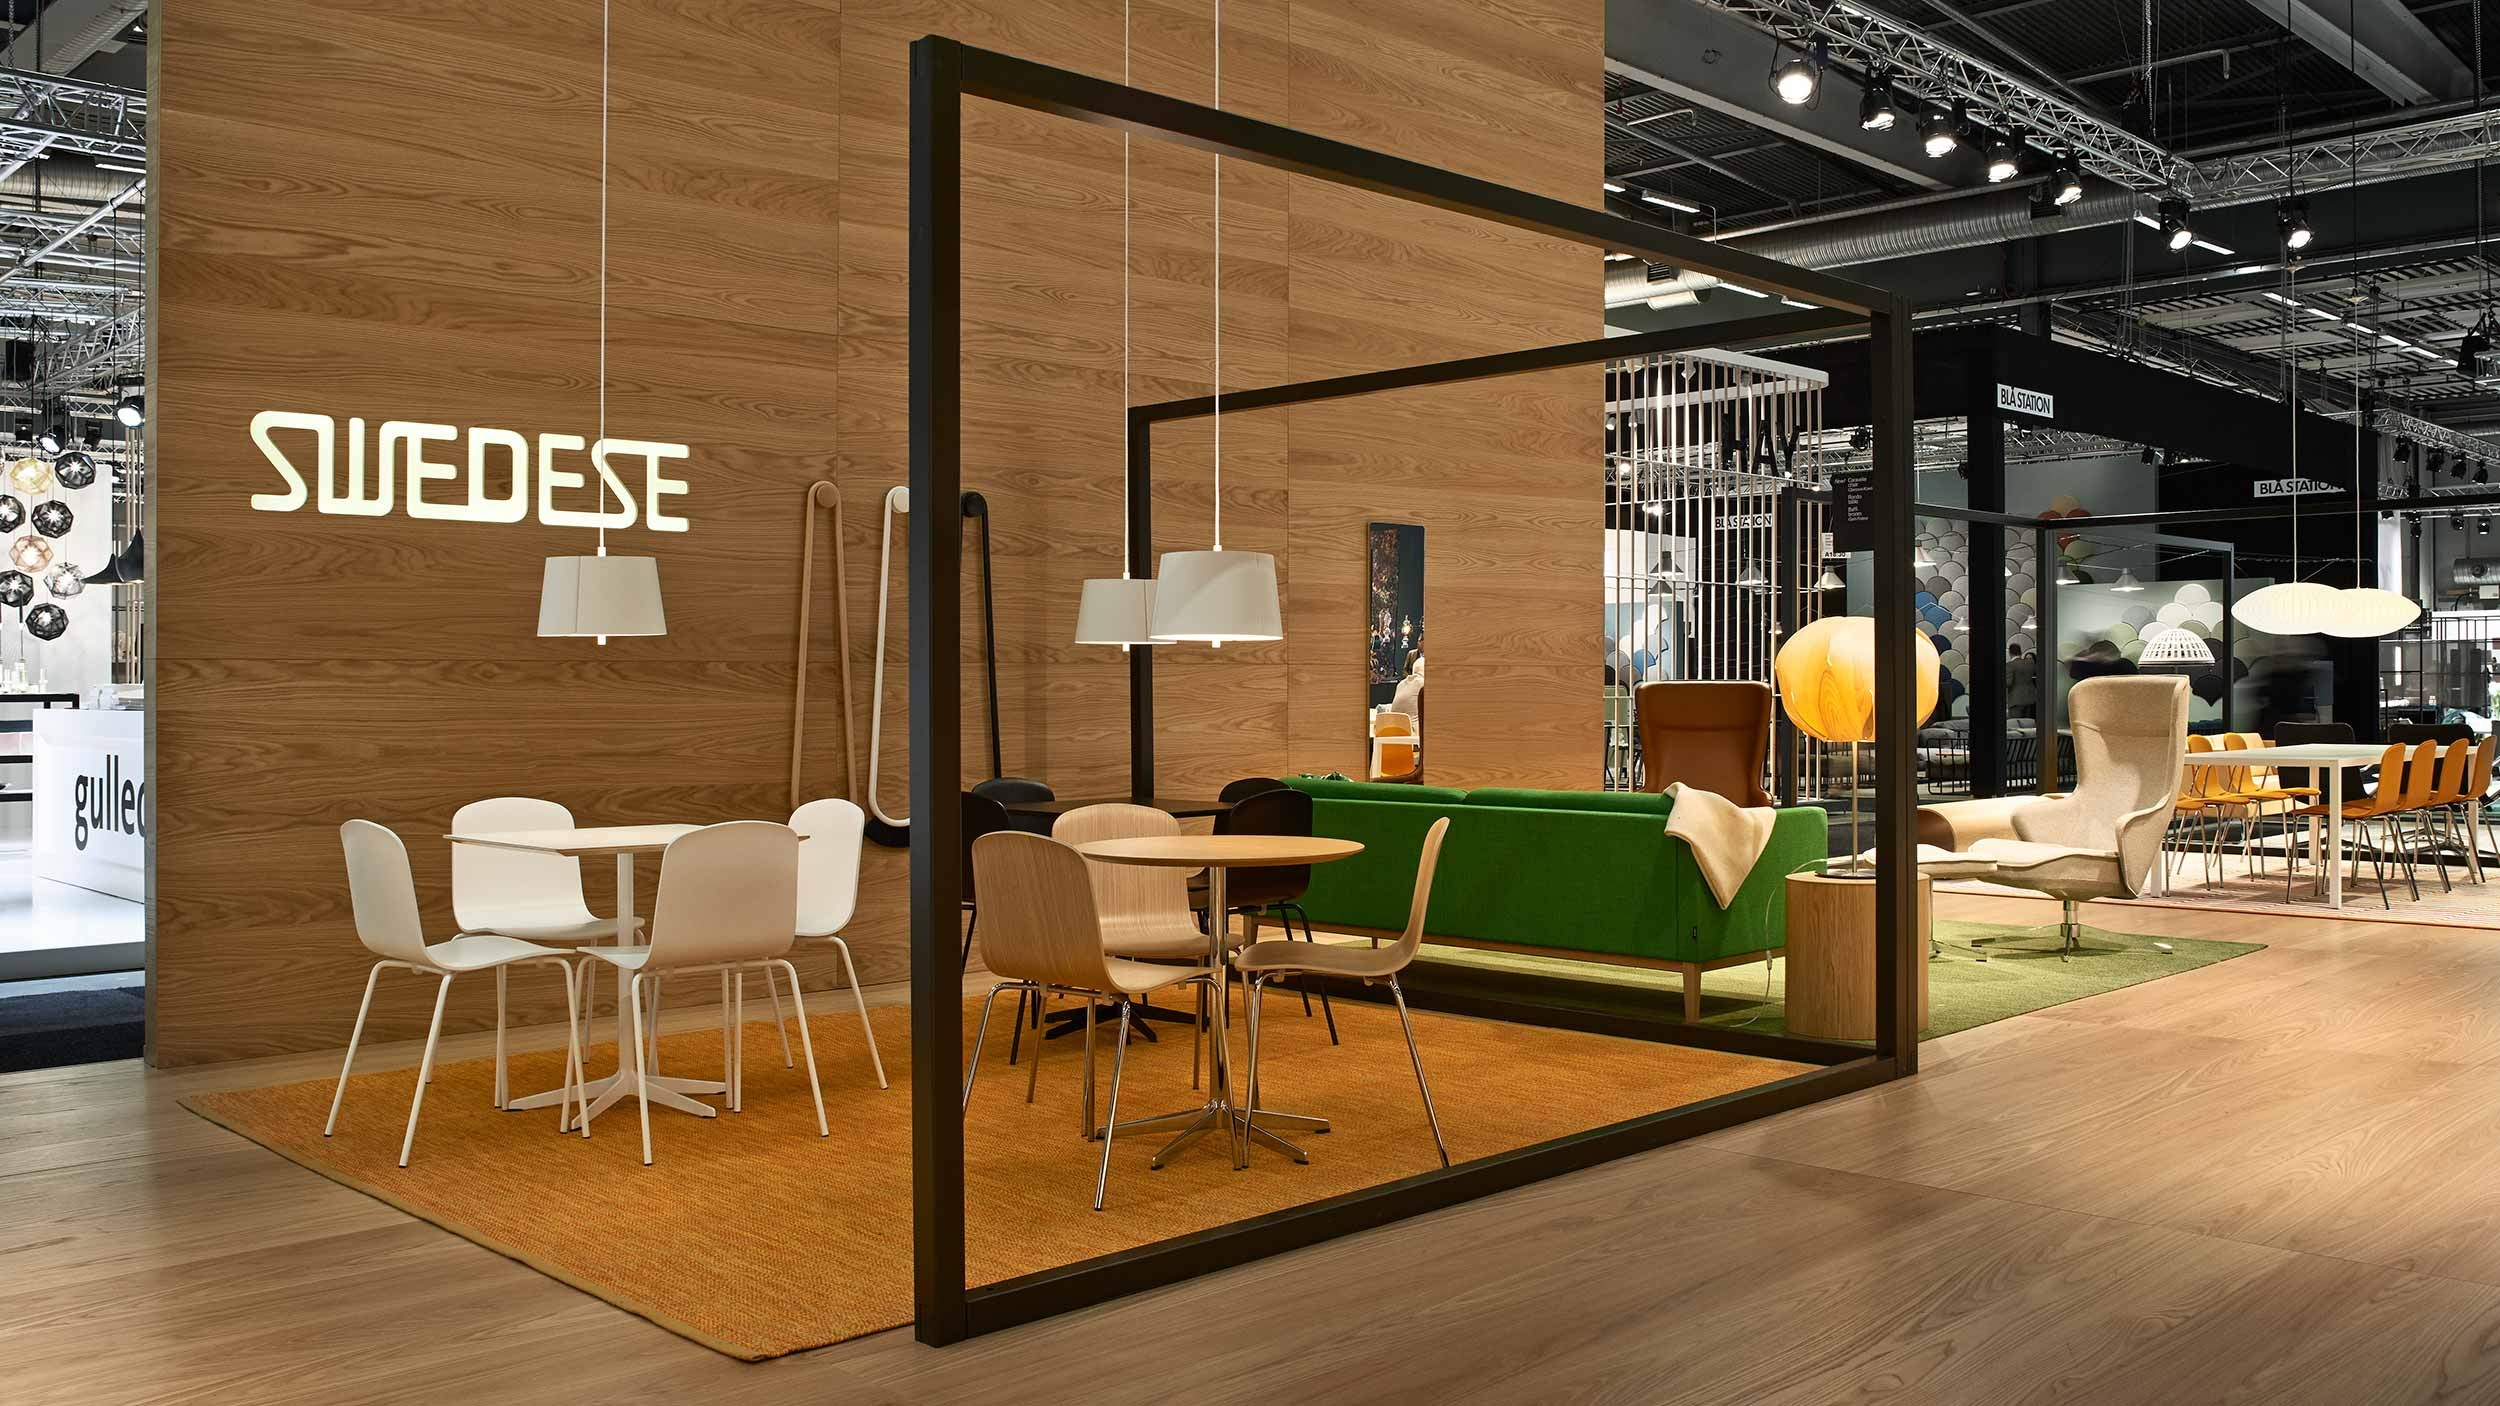 Swedese – stand & exhibition design